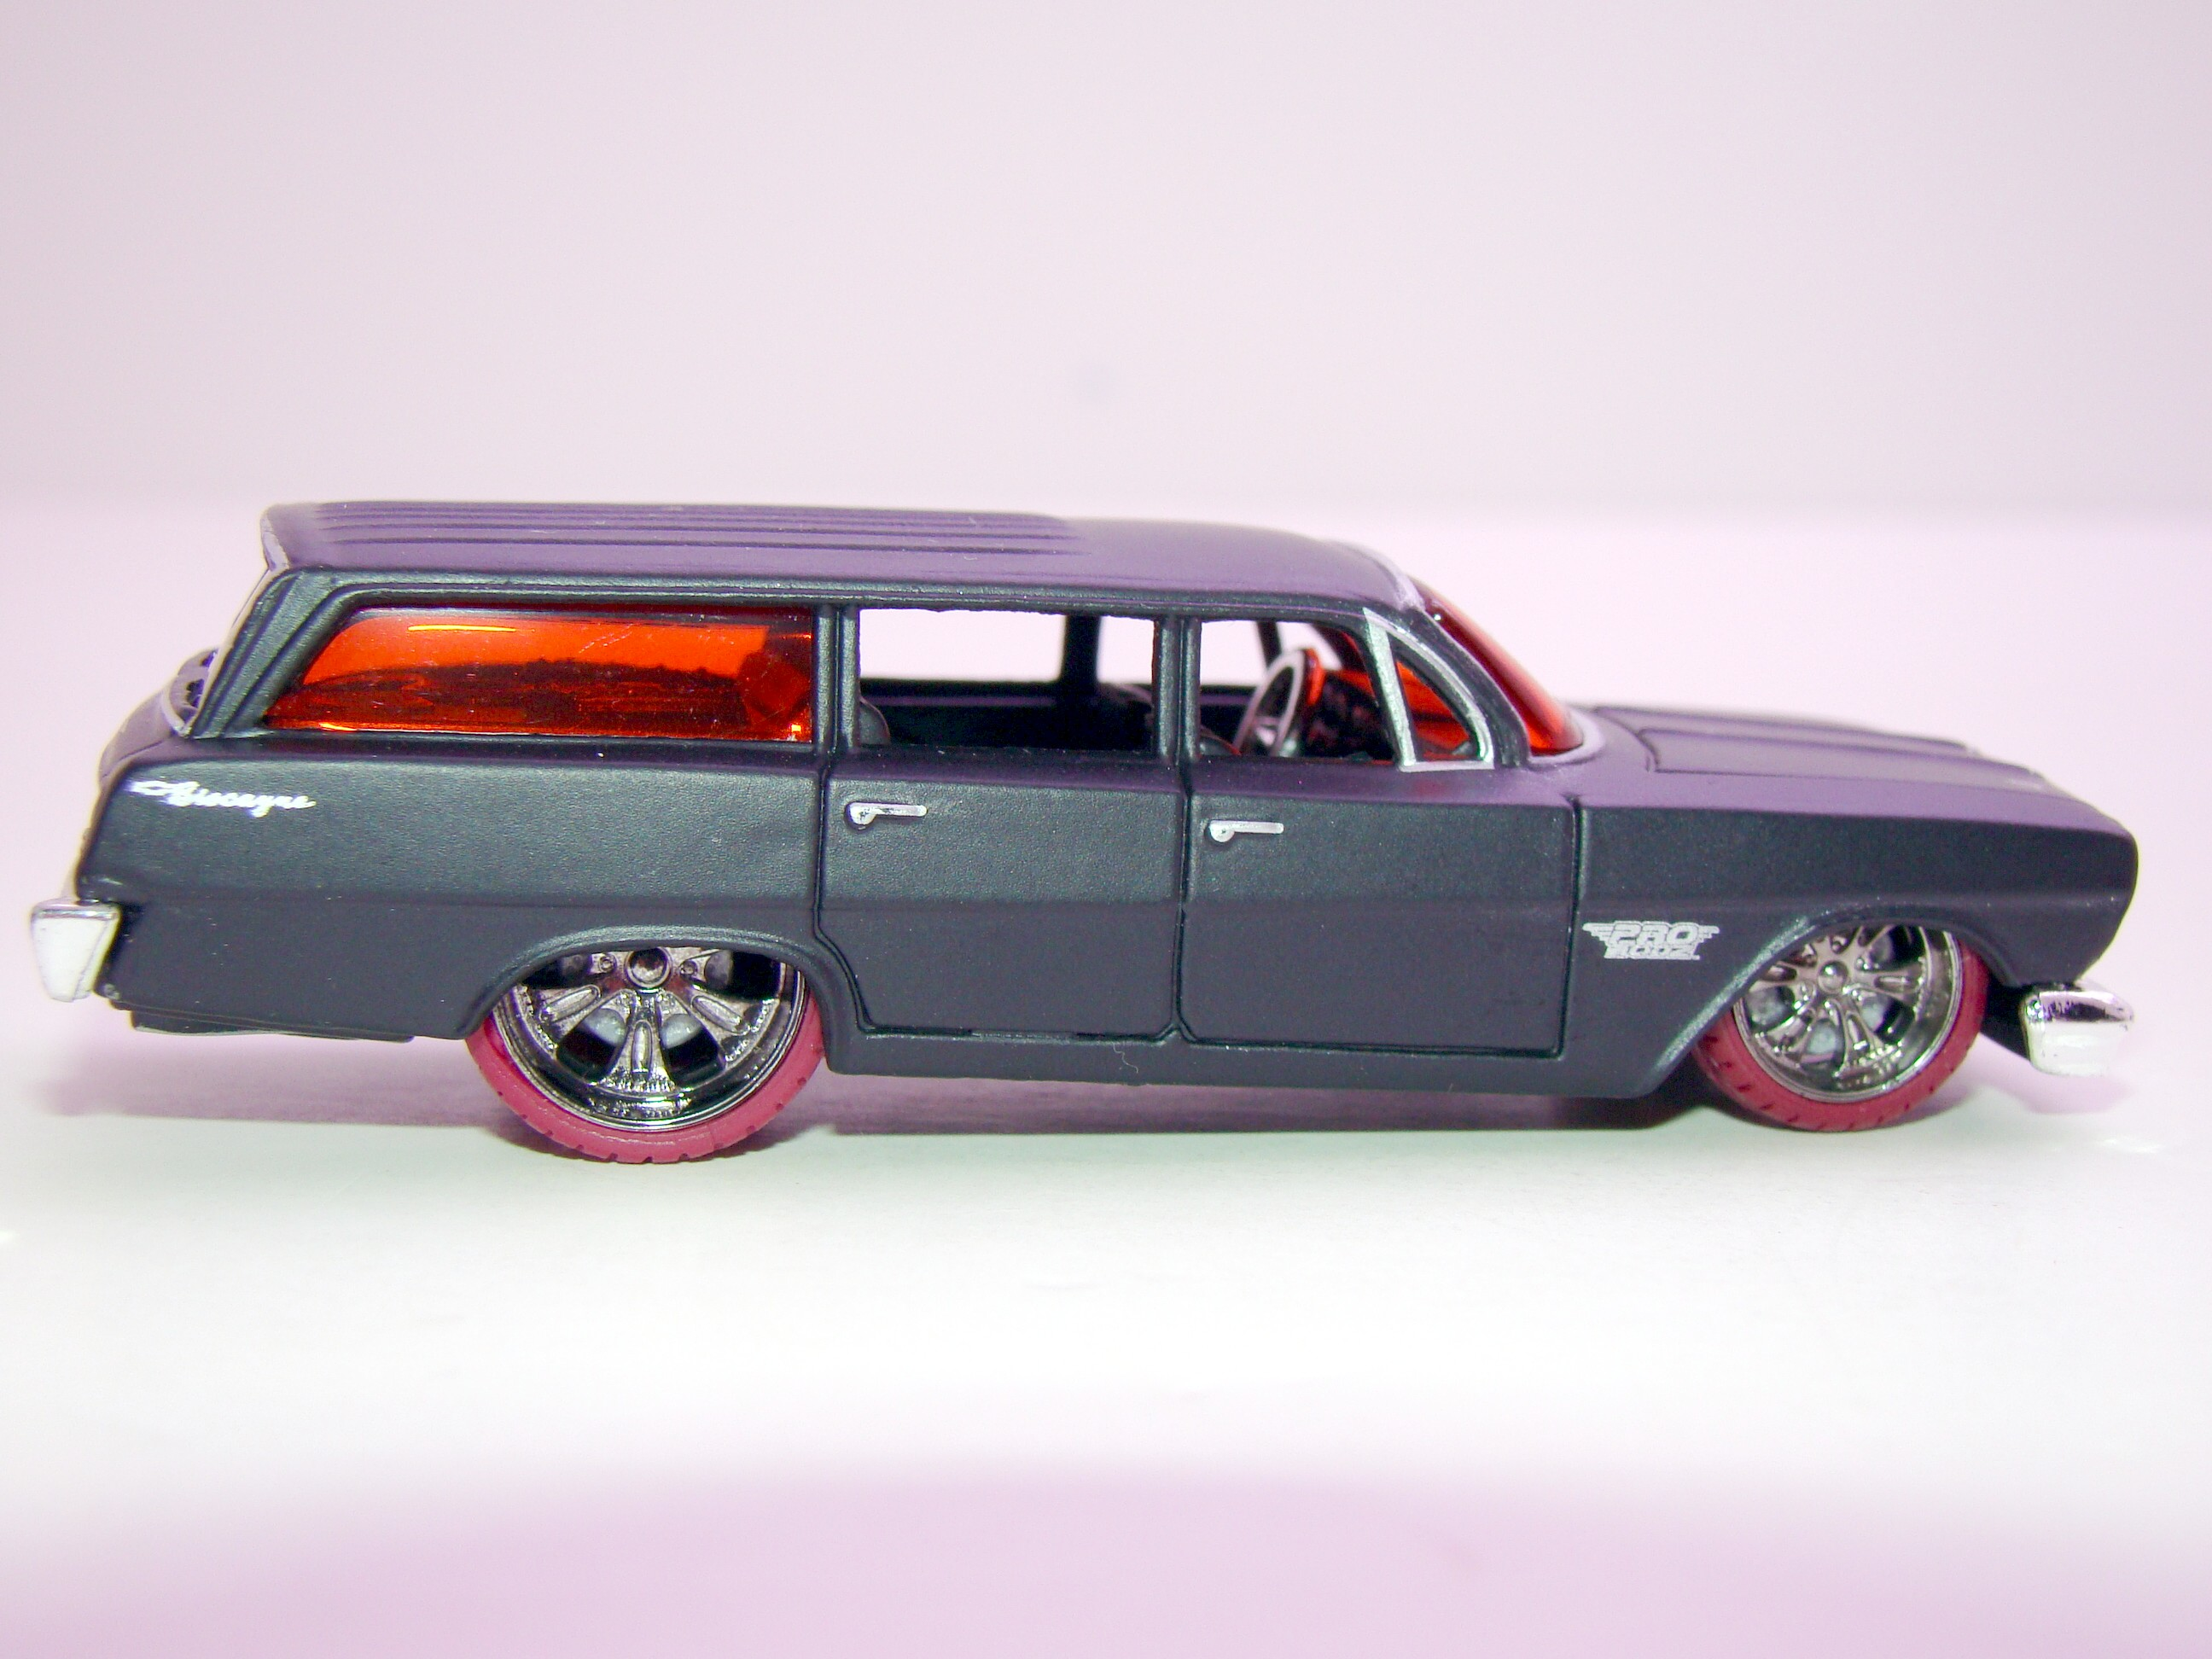 maisto 62 chevrolet biscayne wagon (4) | Flickr - Photo Sharing!